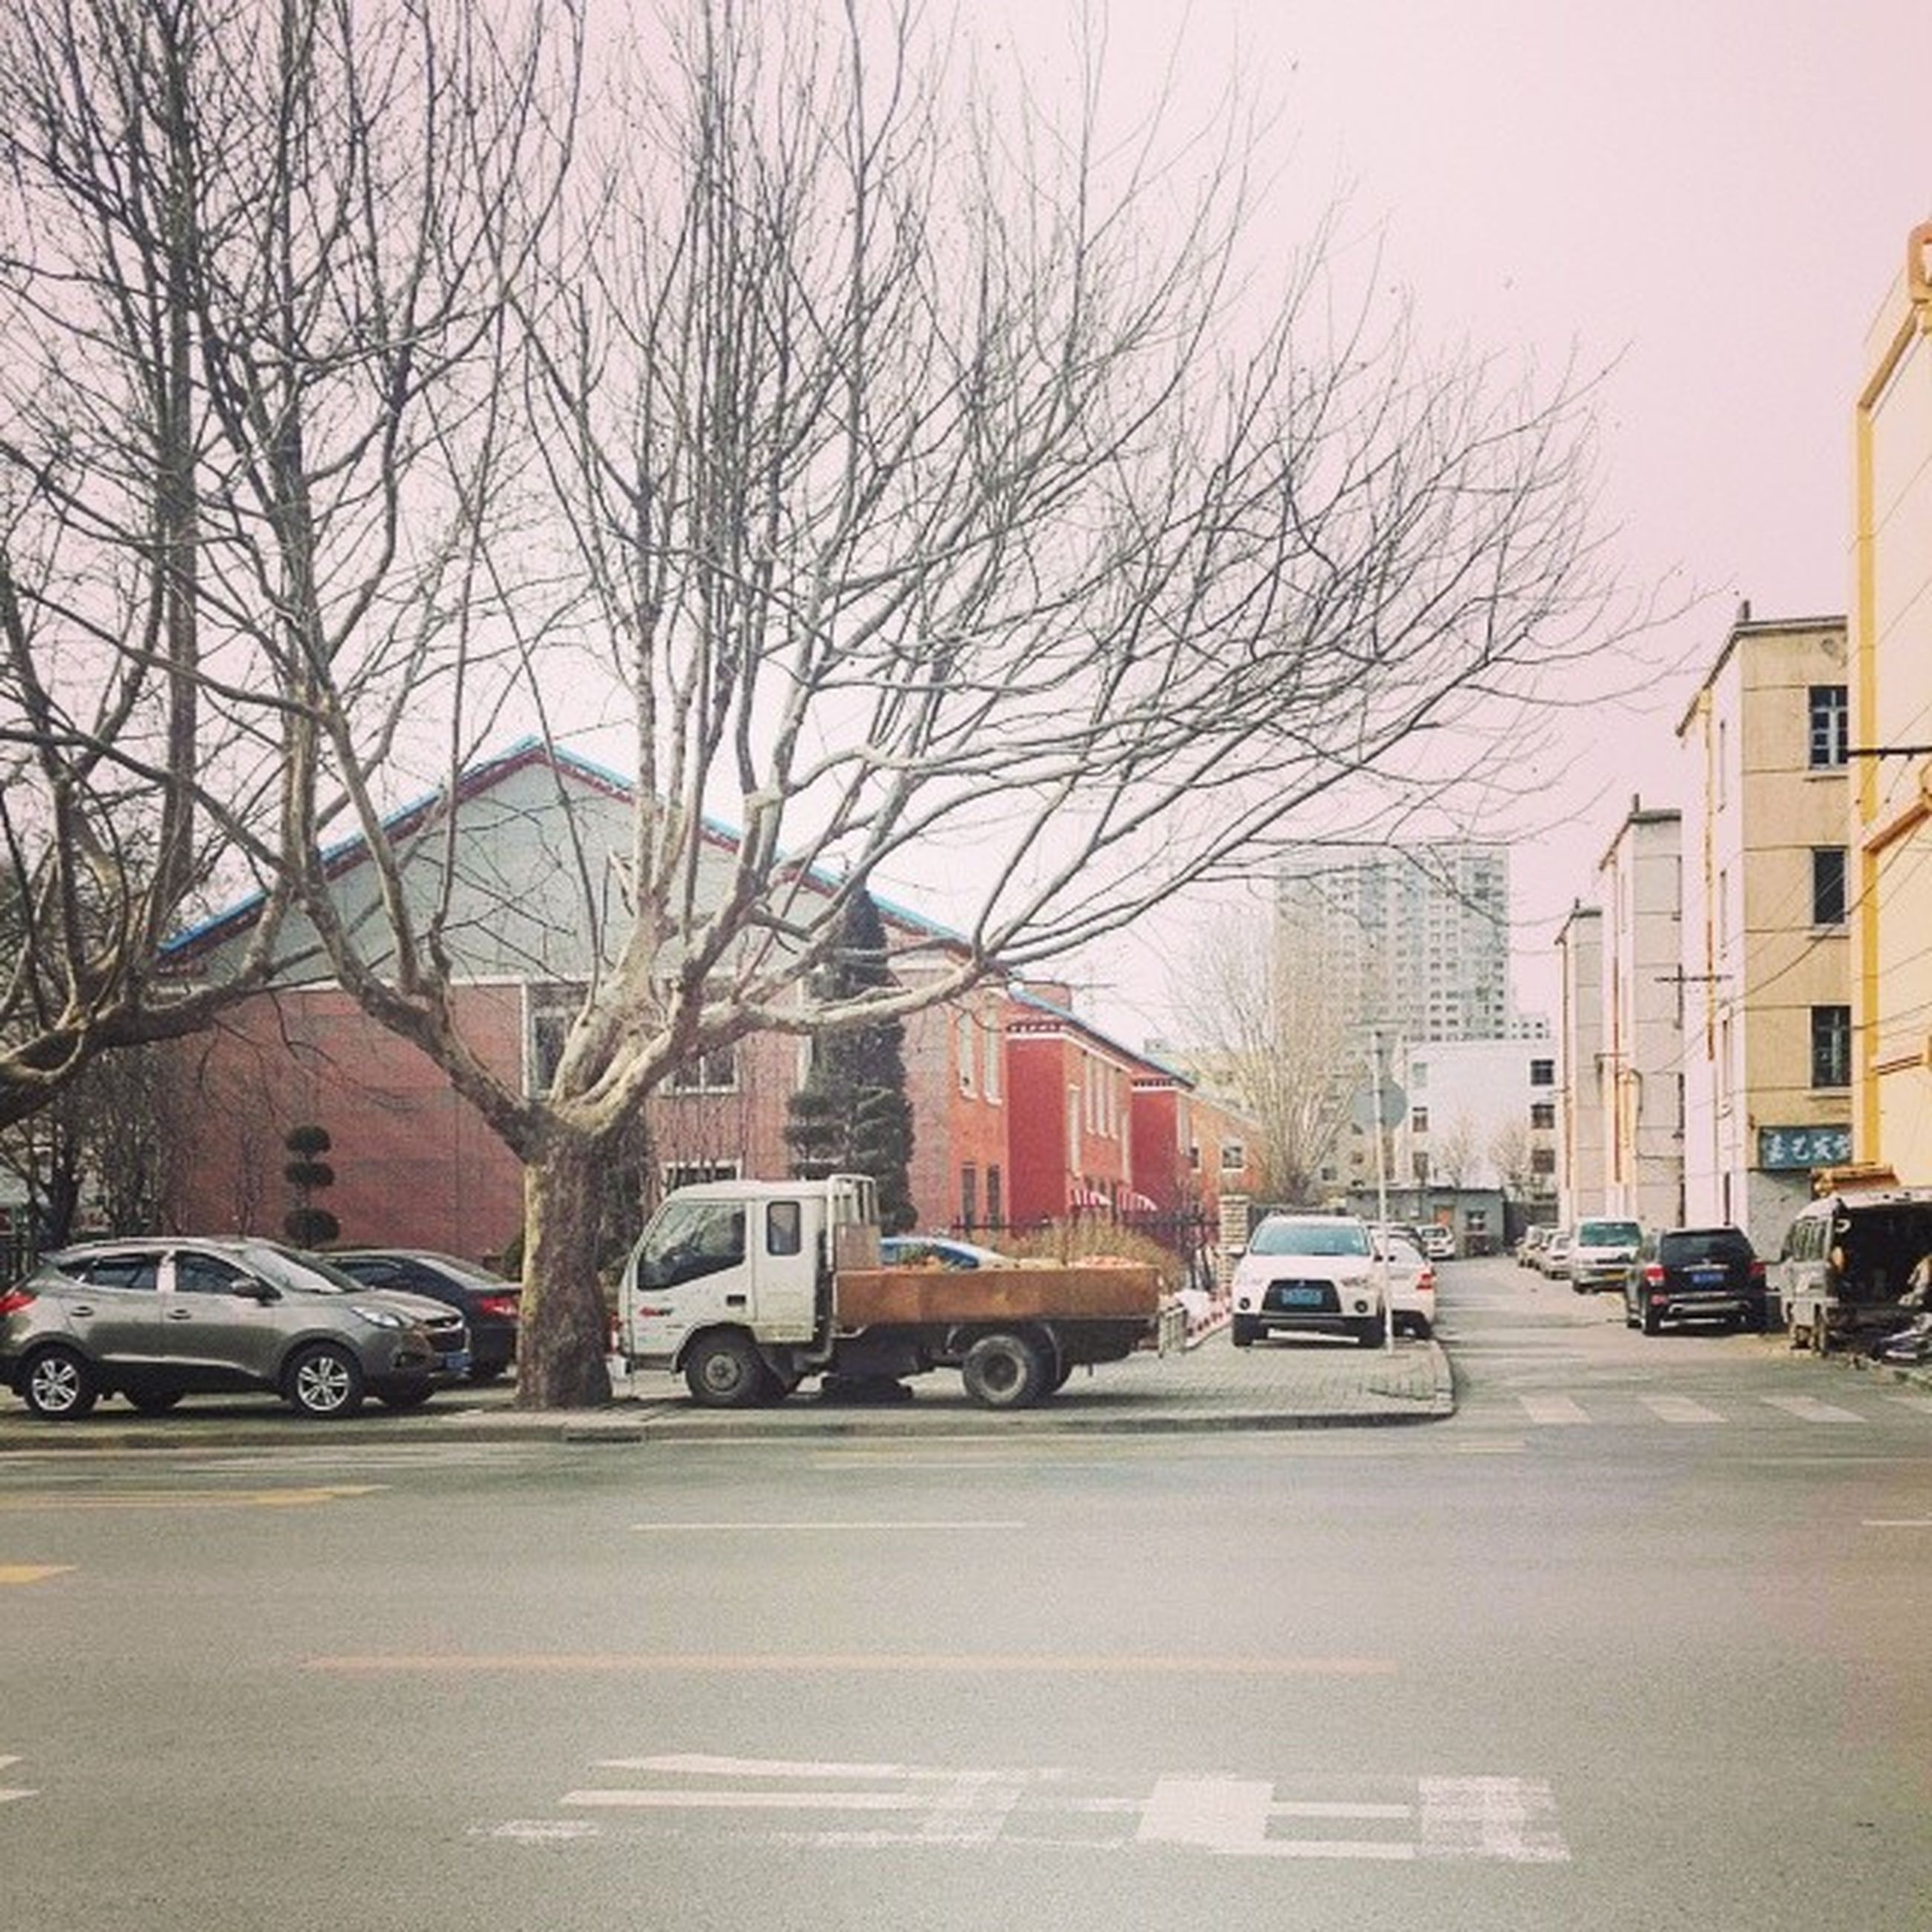 car, transportation, land vehicle, building exterior, architecture, mode of transport, built structure, street, road, city, bare tree, city street, road marking, traffic, tree, sky, parking, city life, the way forward, vehicle